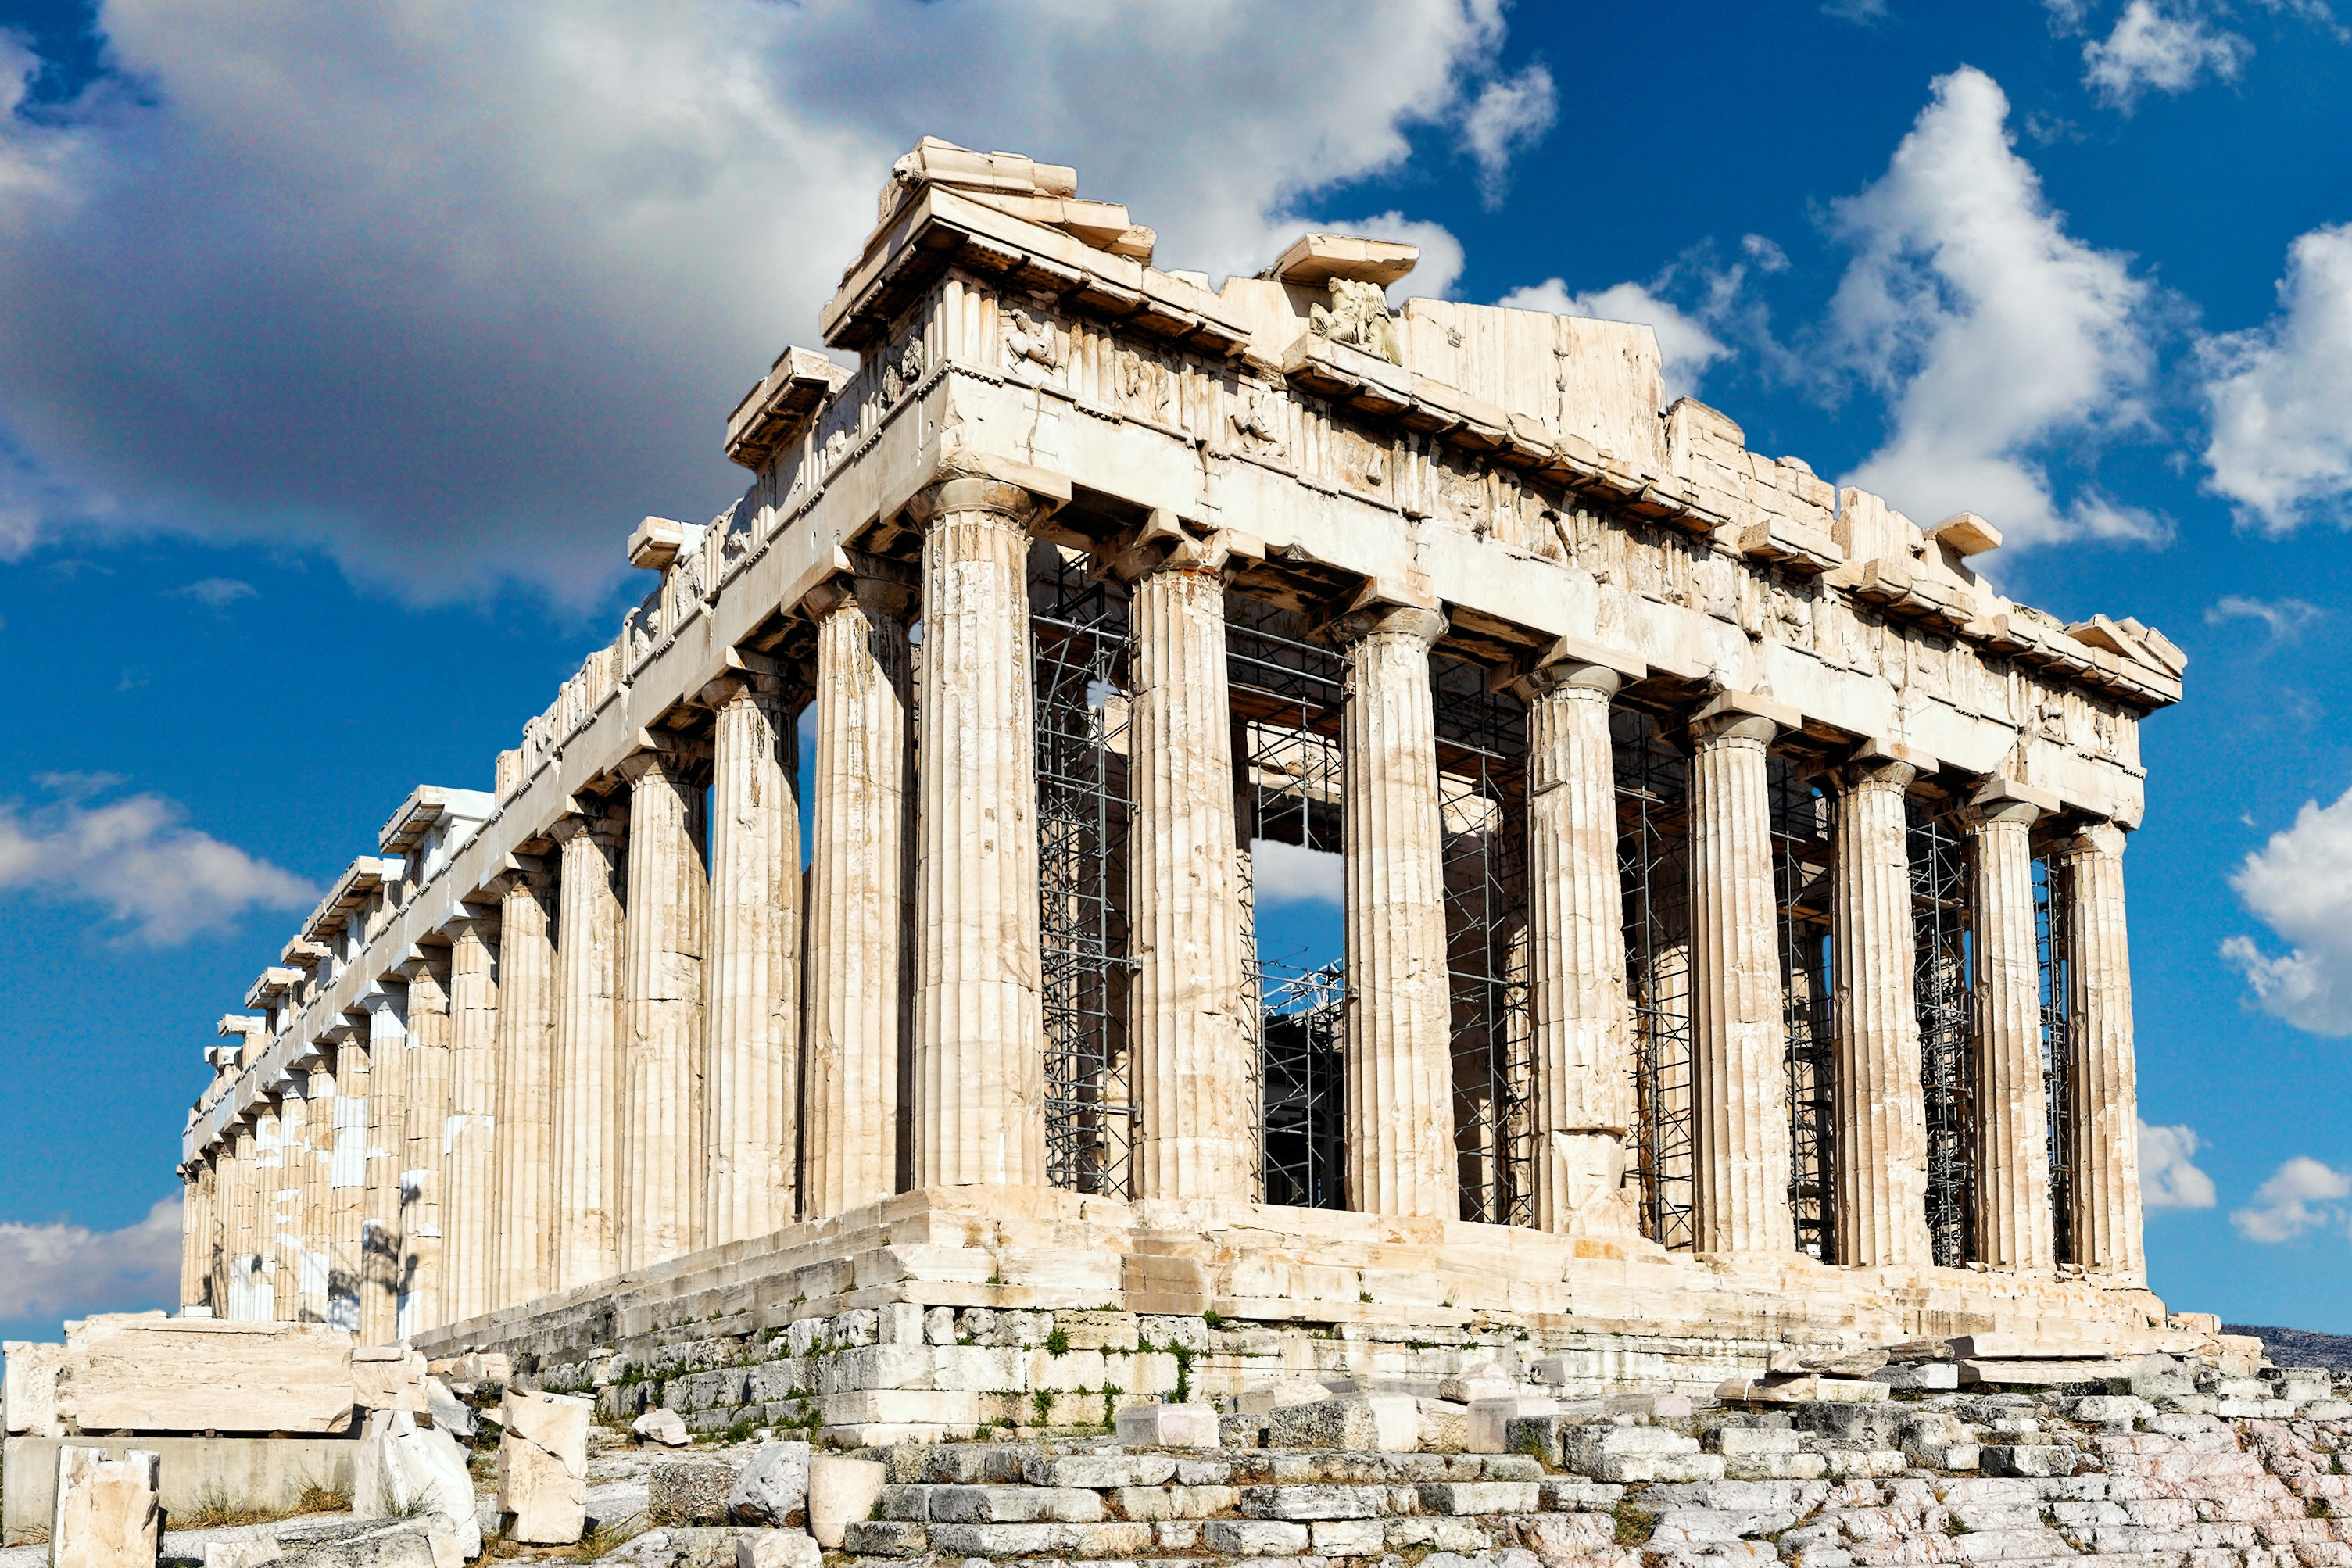 The Acropolis in Athens | Source: Shutterstock